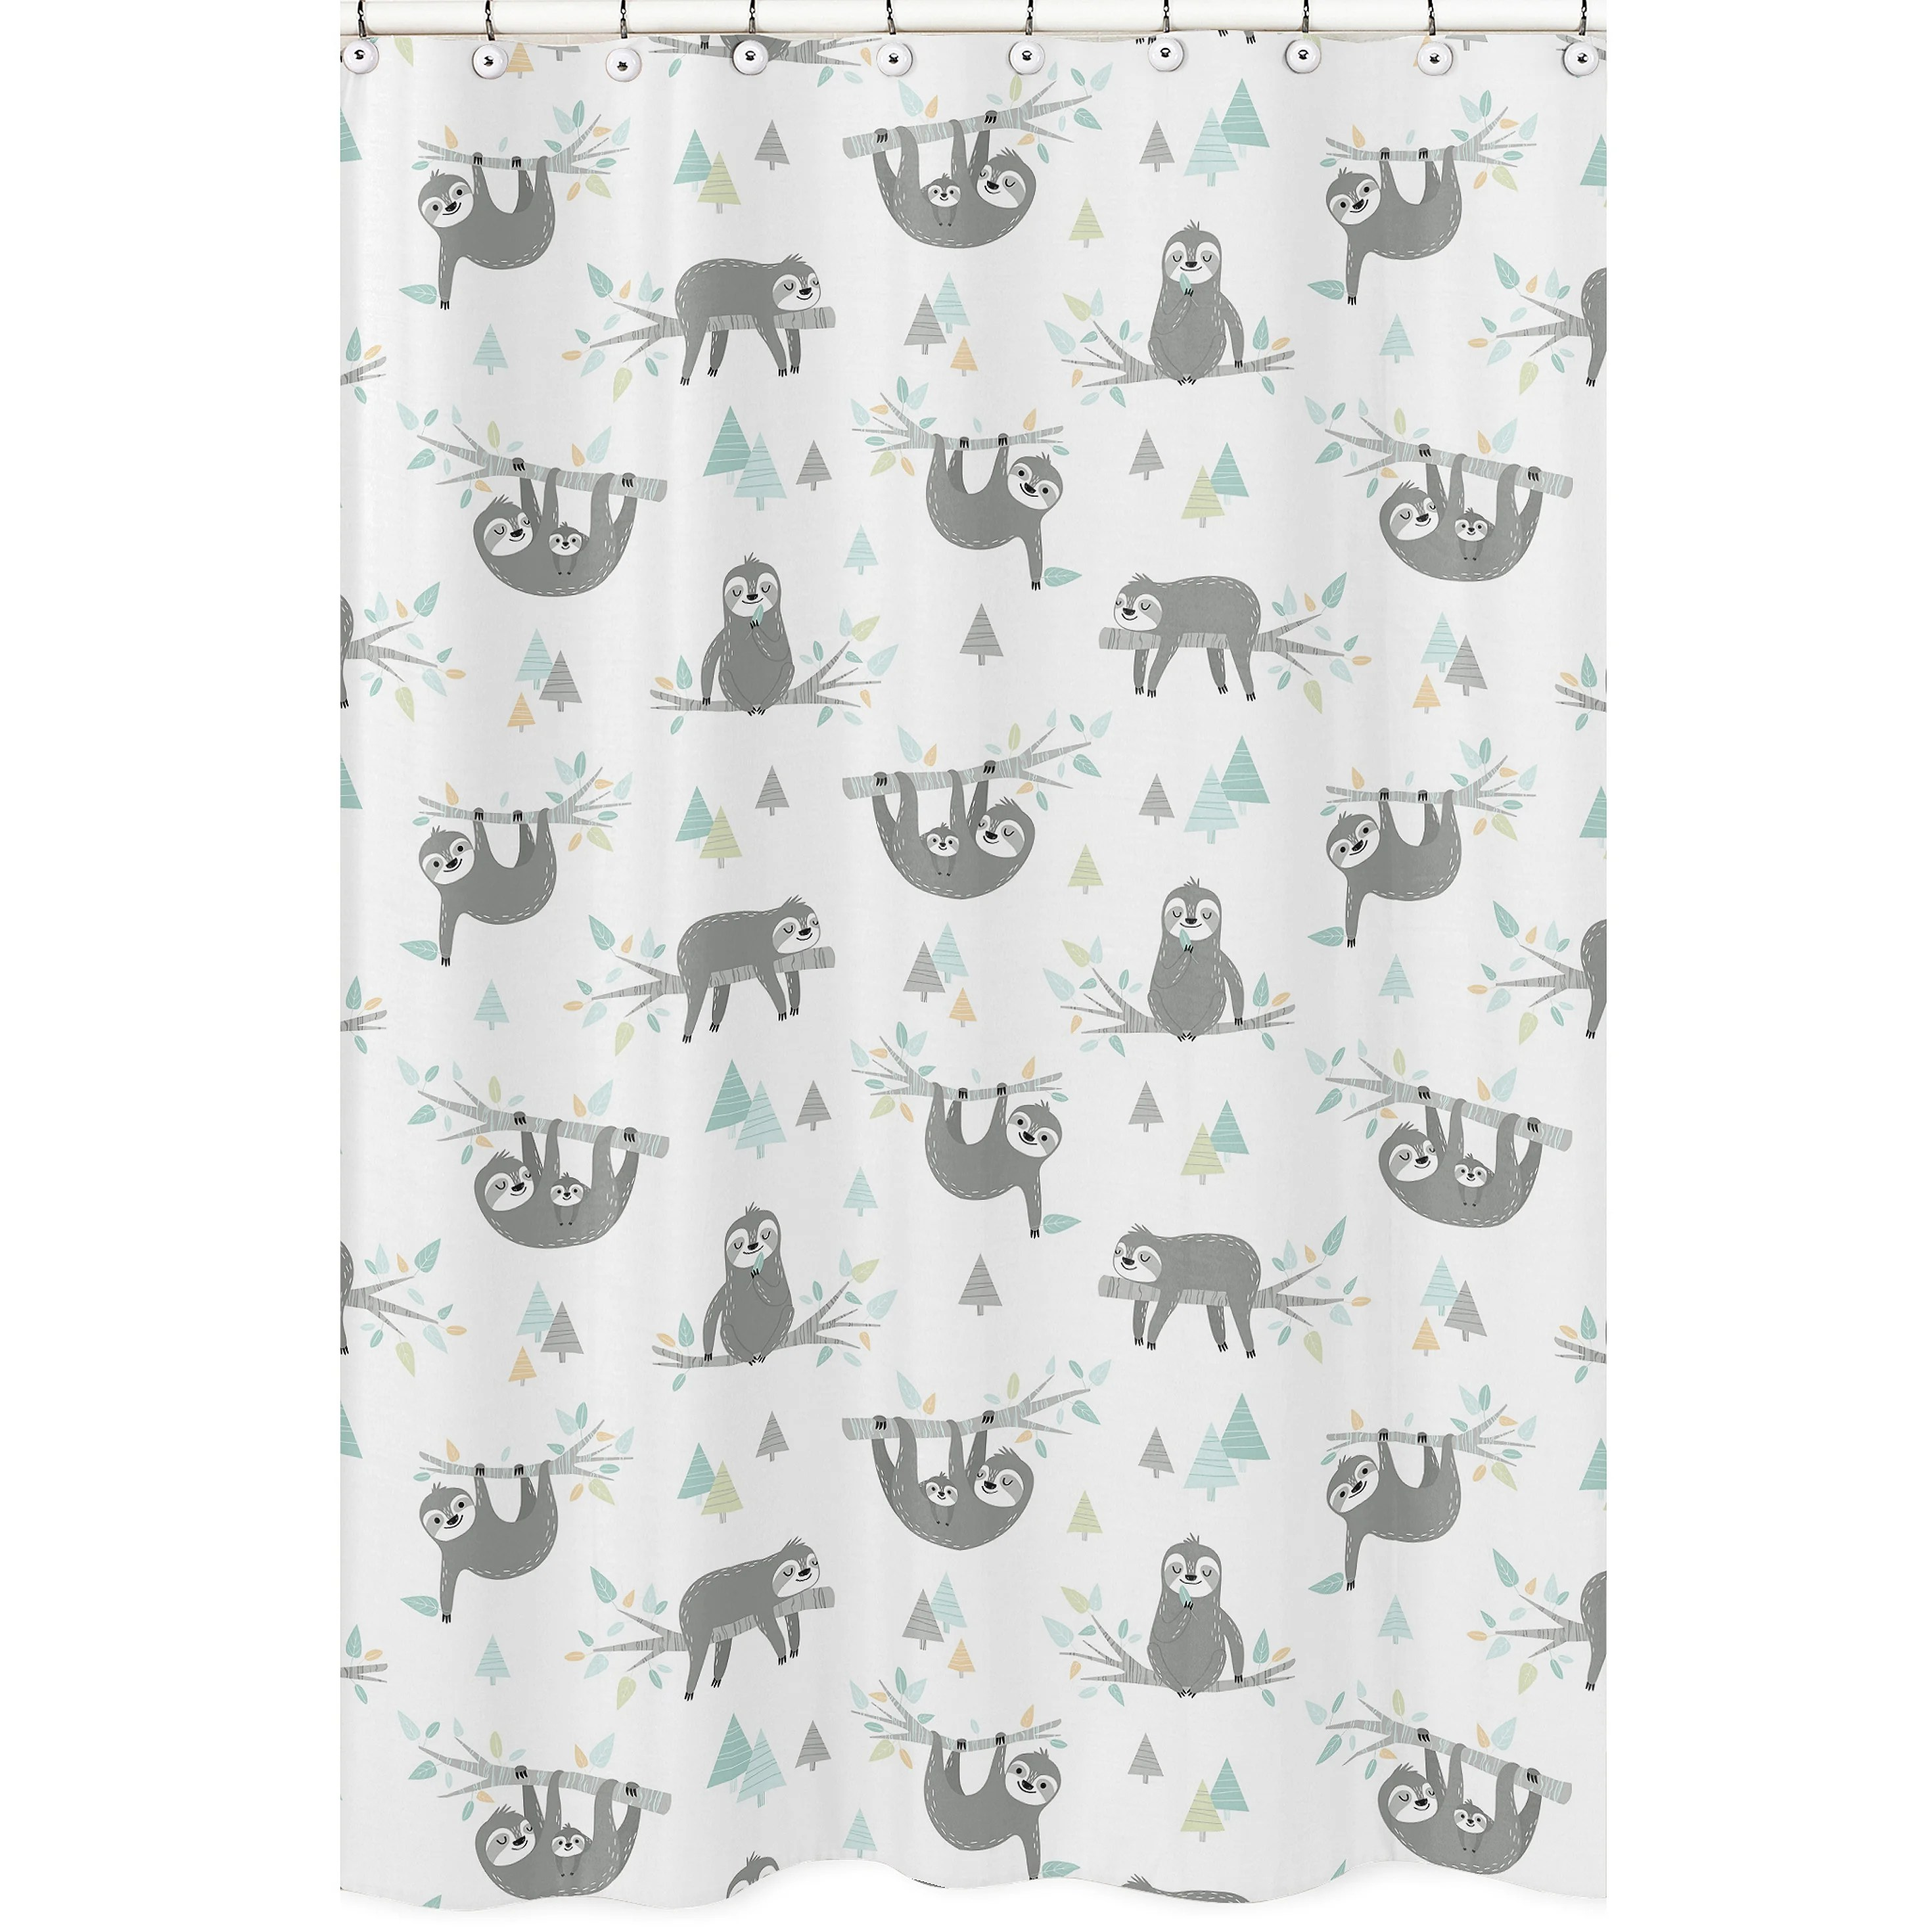 aqua and grey sloth collection single shower curtain